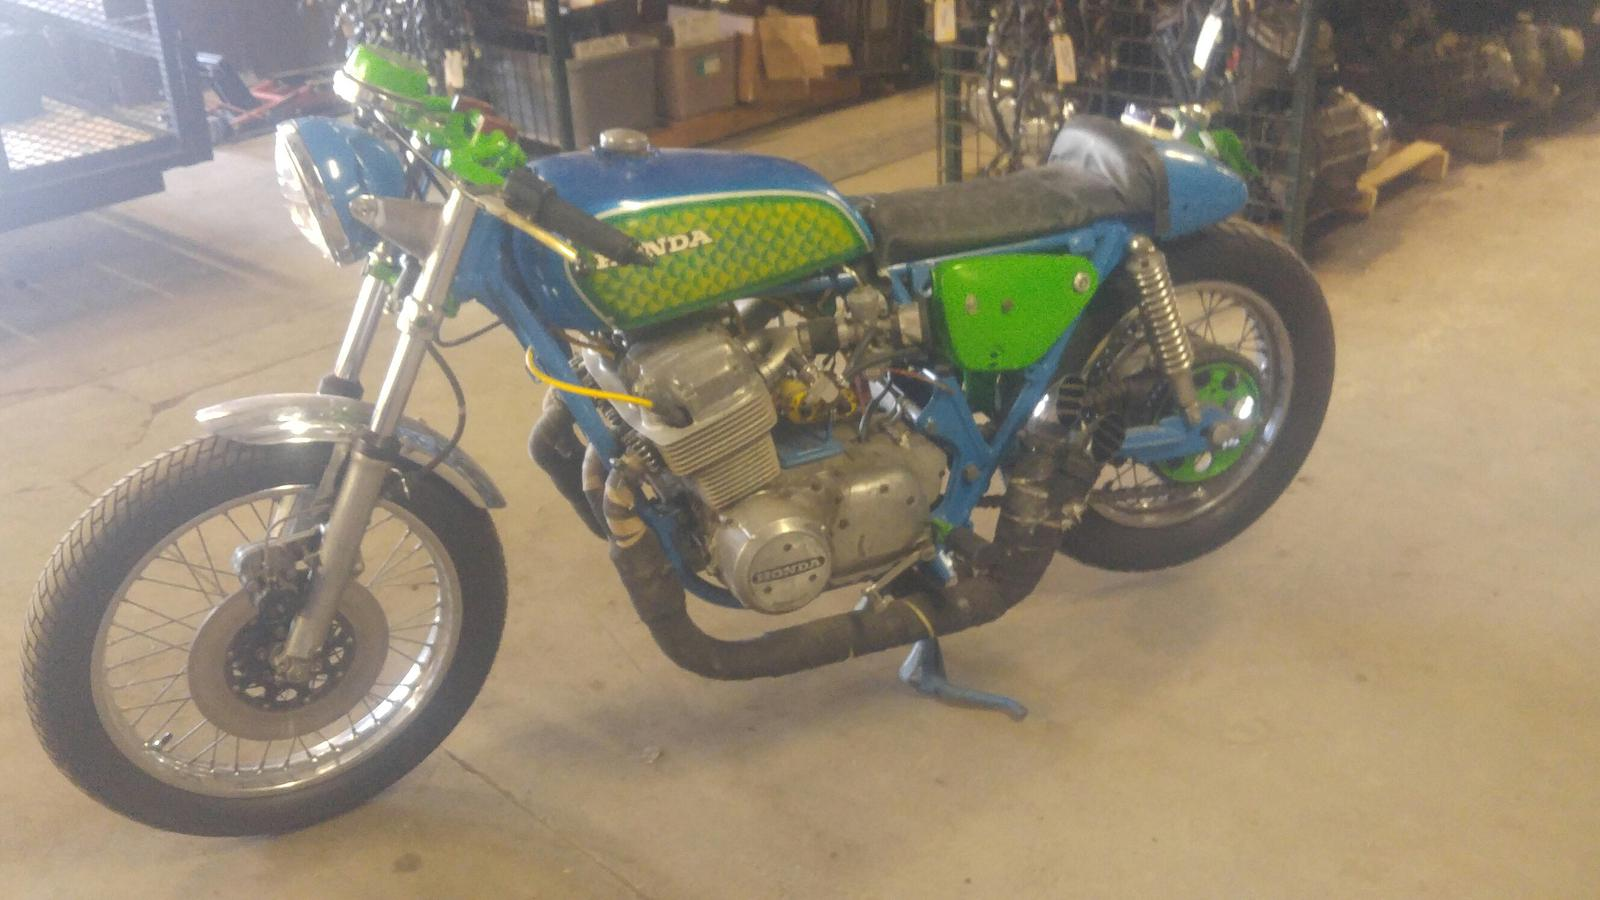 1977 Honda CB750 for sale in Mt. Clemens, MI | Michigan Motorcycle ...